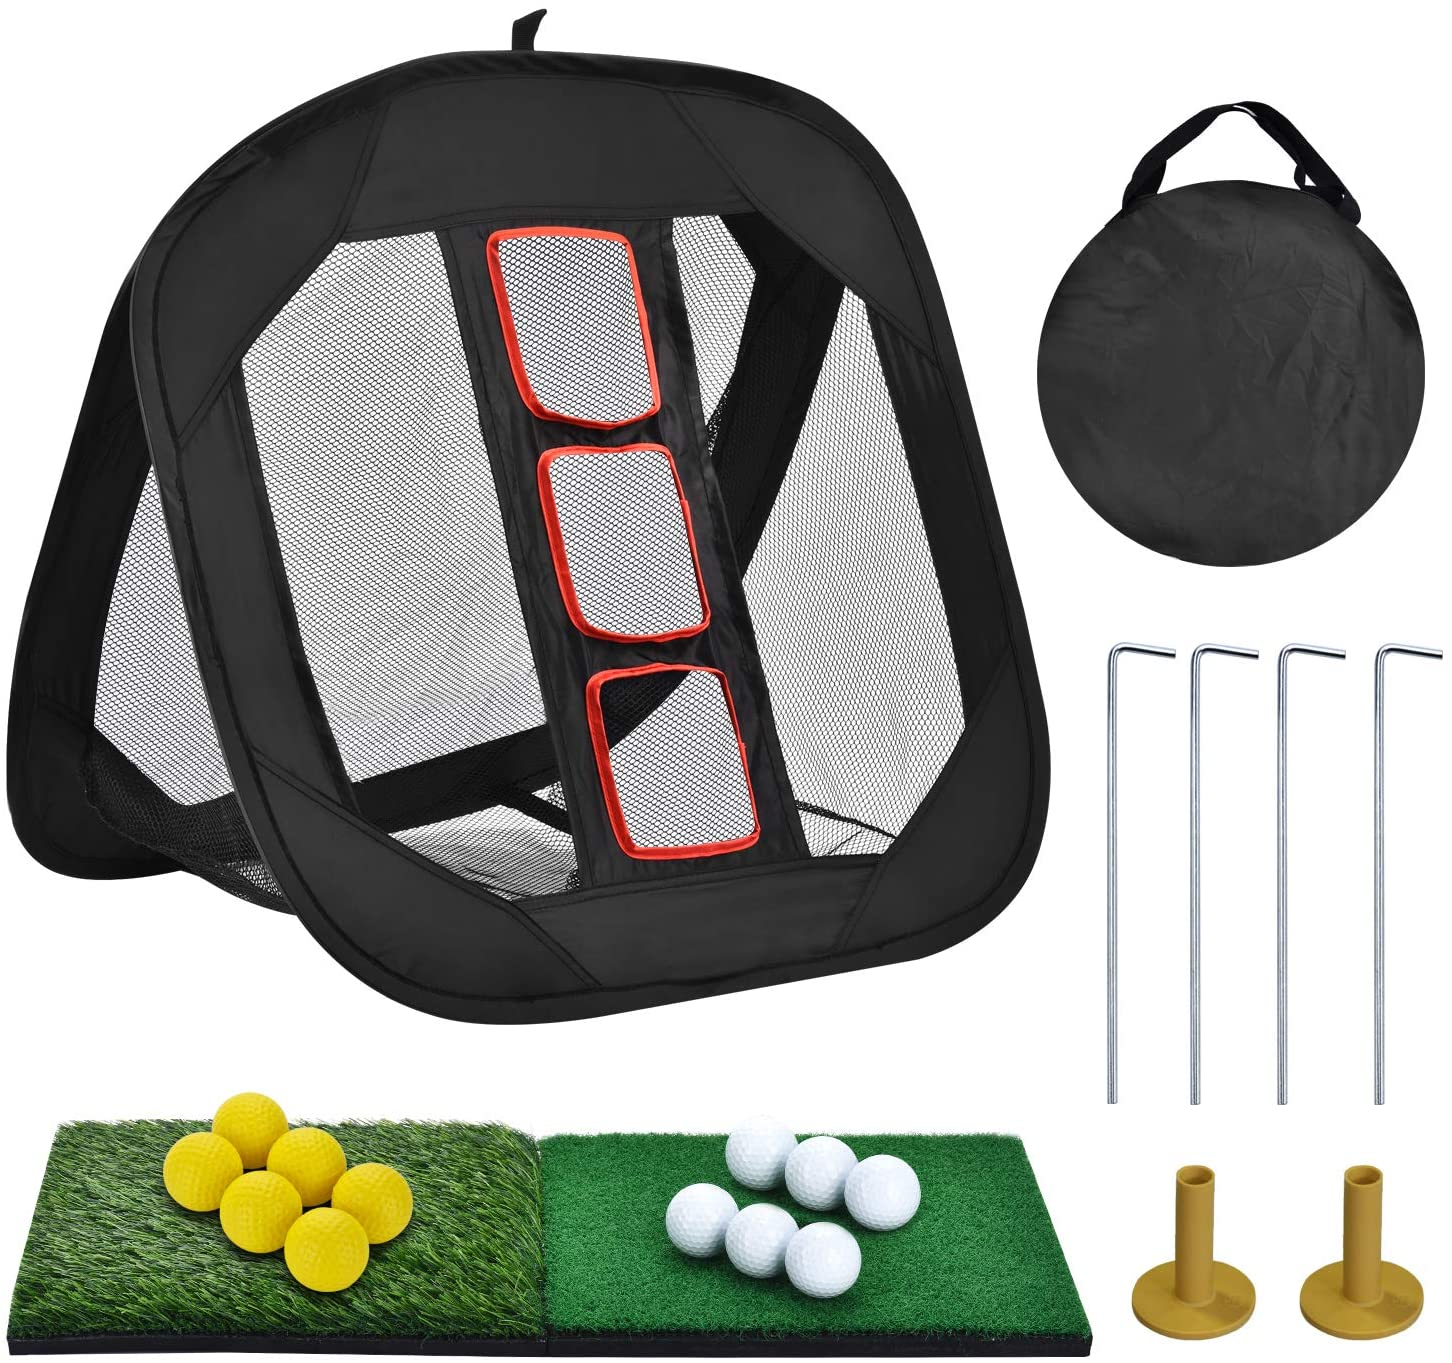 SUNHOO Pop-up Golf Chipping Net with Dual Turf Hitting Mat, Real Solid Practice Golf Ball and Tees Combo, Driving Range Target Swing Training Aids Backyard | Indoor | Outdoor